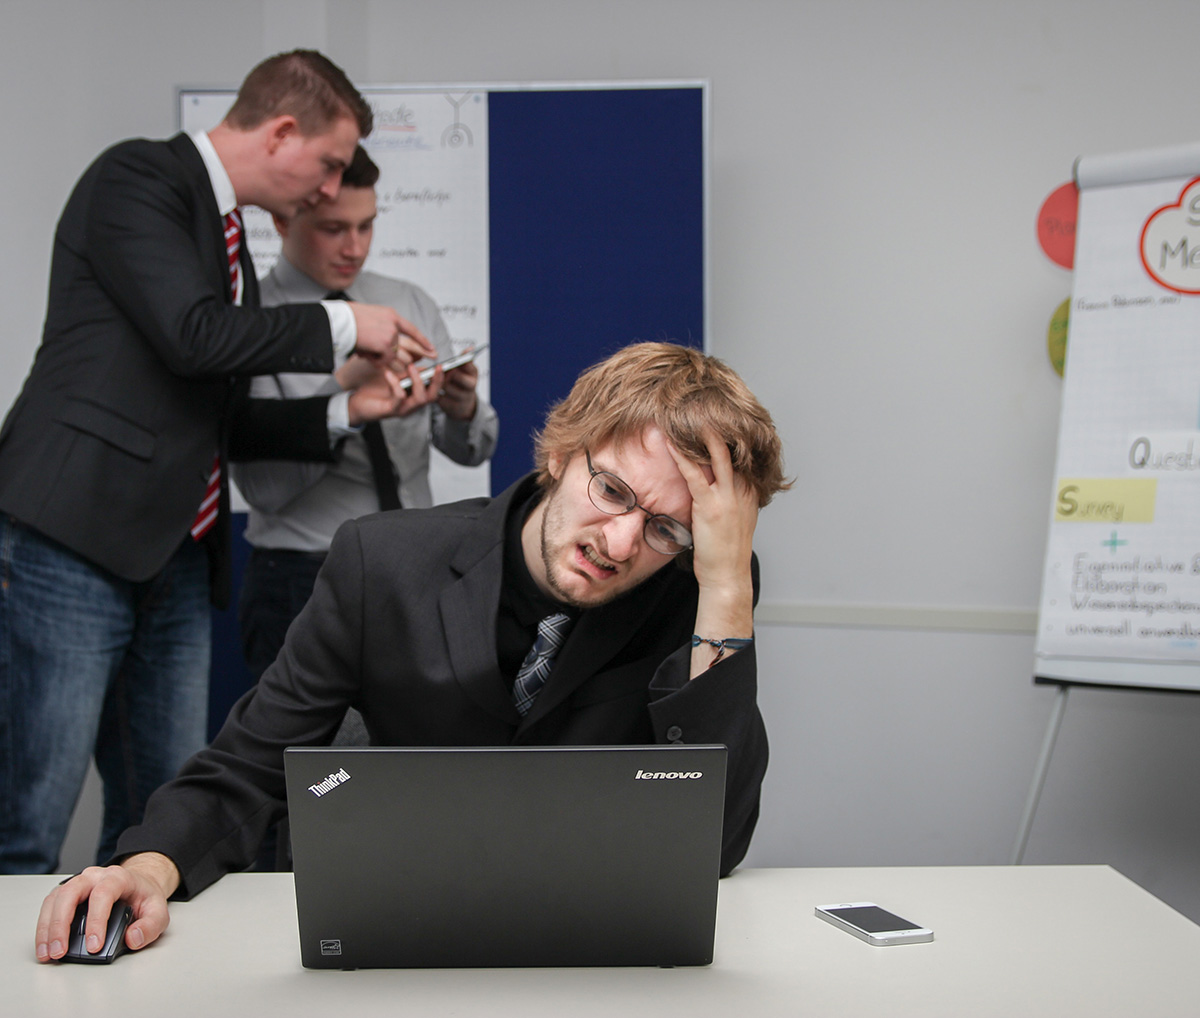 Are unhappy with your job?